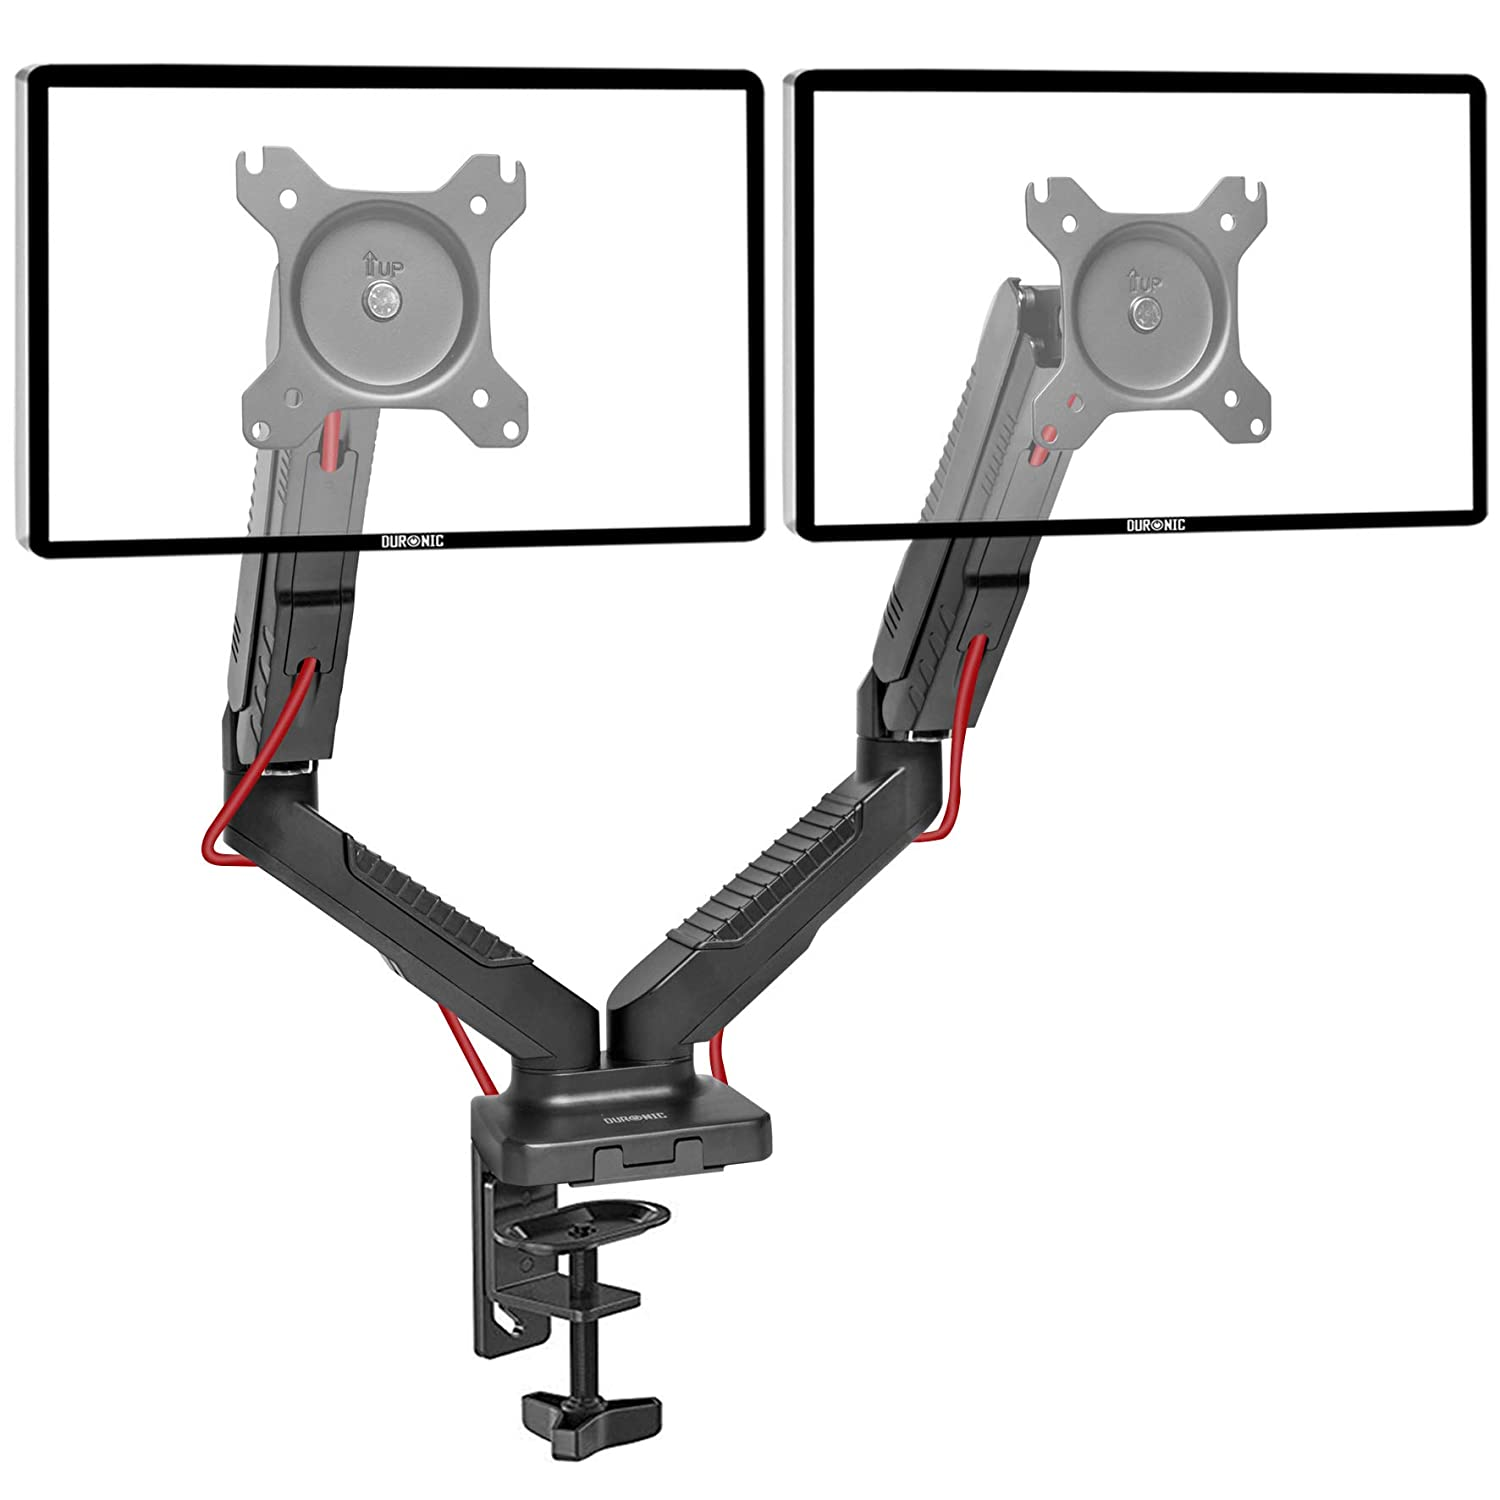 Duronic DMUSB5X1 Gas Powered Full Motion Single LCD LED Gas Desk Mount Arm Monitor Stand Bracket with Tilt and Swivel (Tilt -90°/+85°|Swivel 180°|Rotate 360°) + (USB | Headphone | Microphone) Extension Sockets